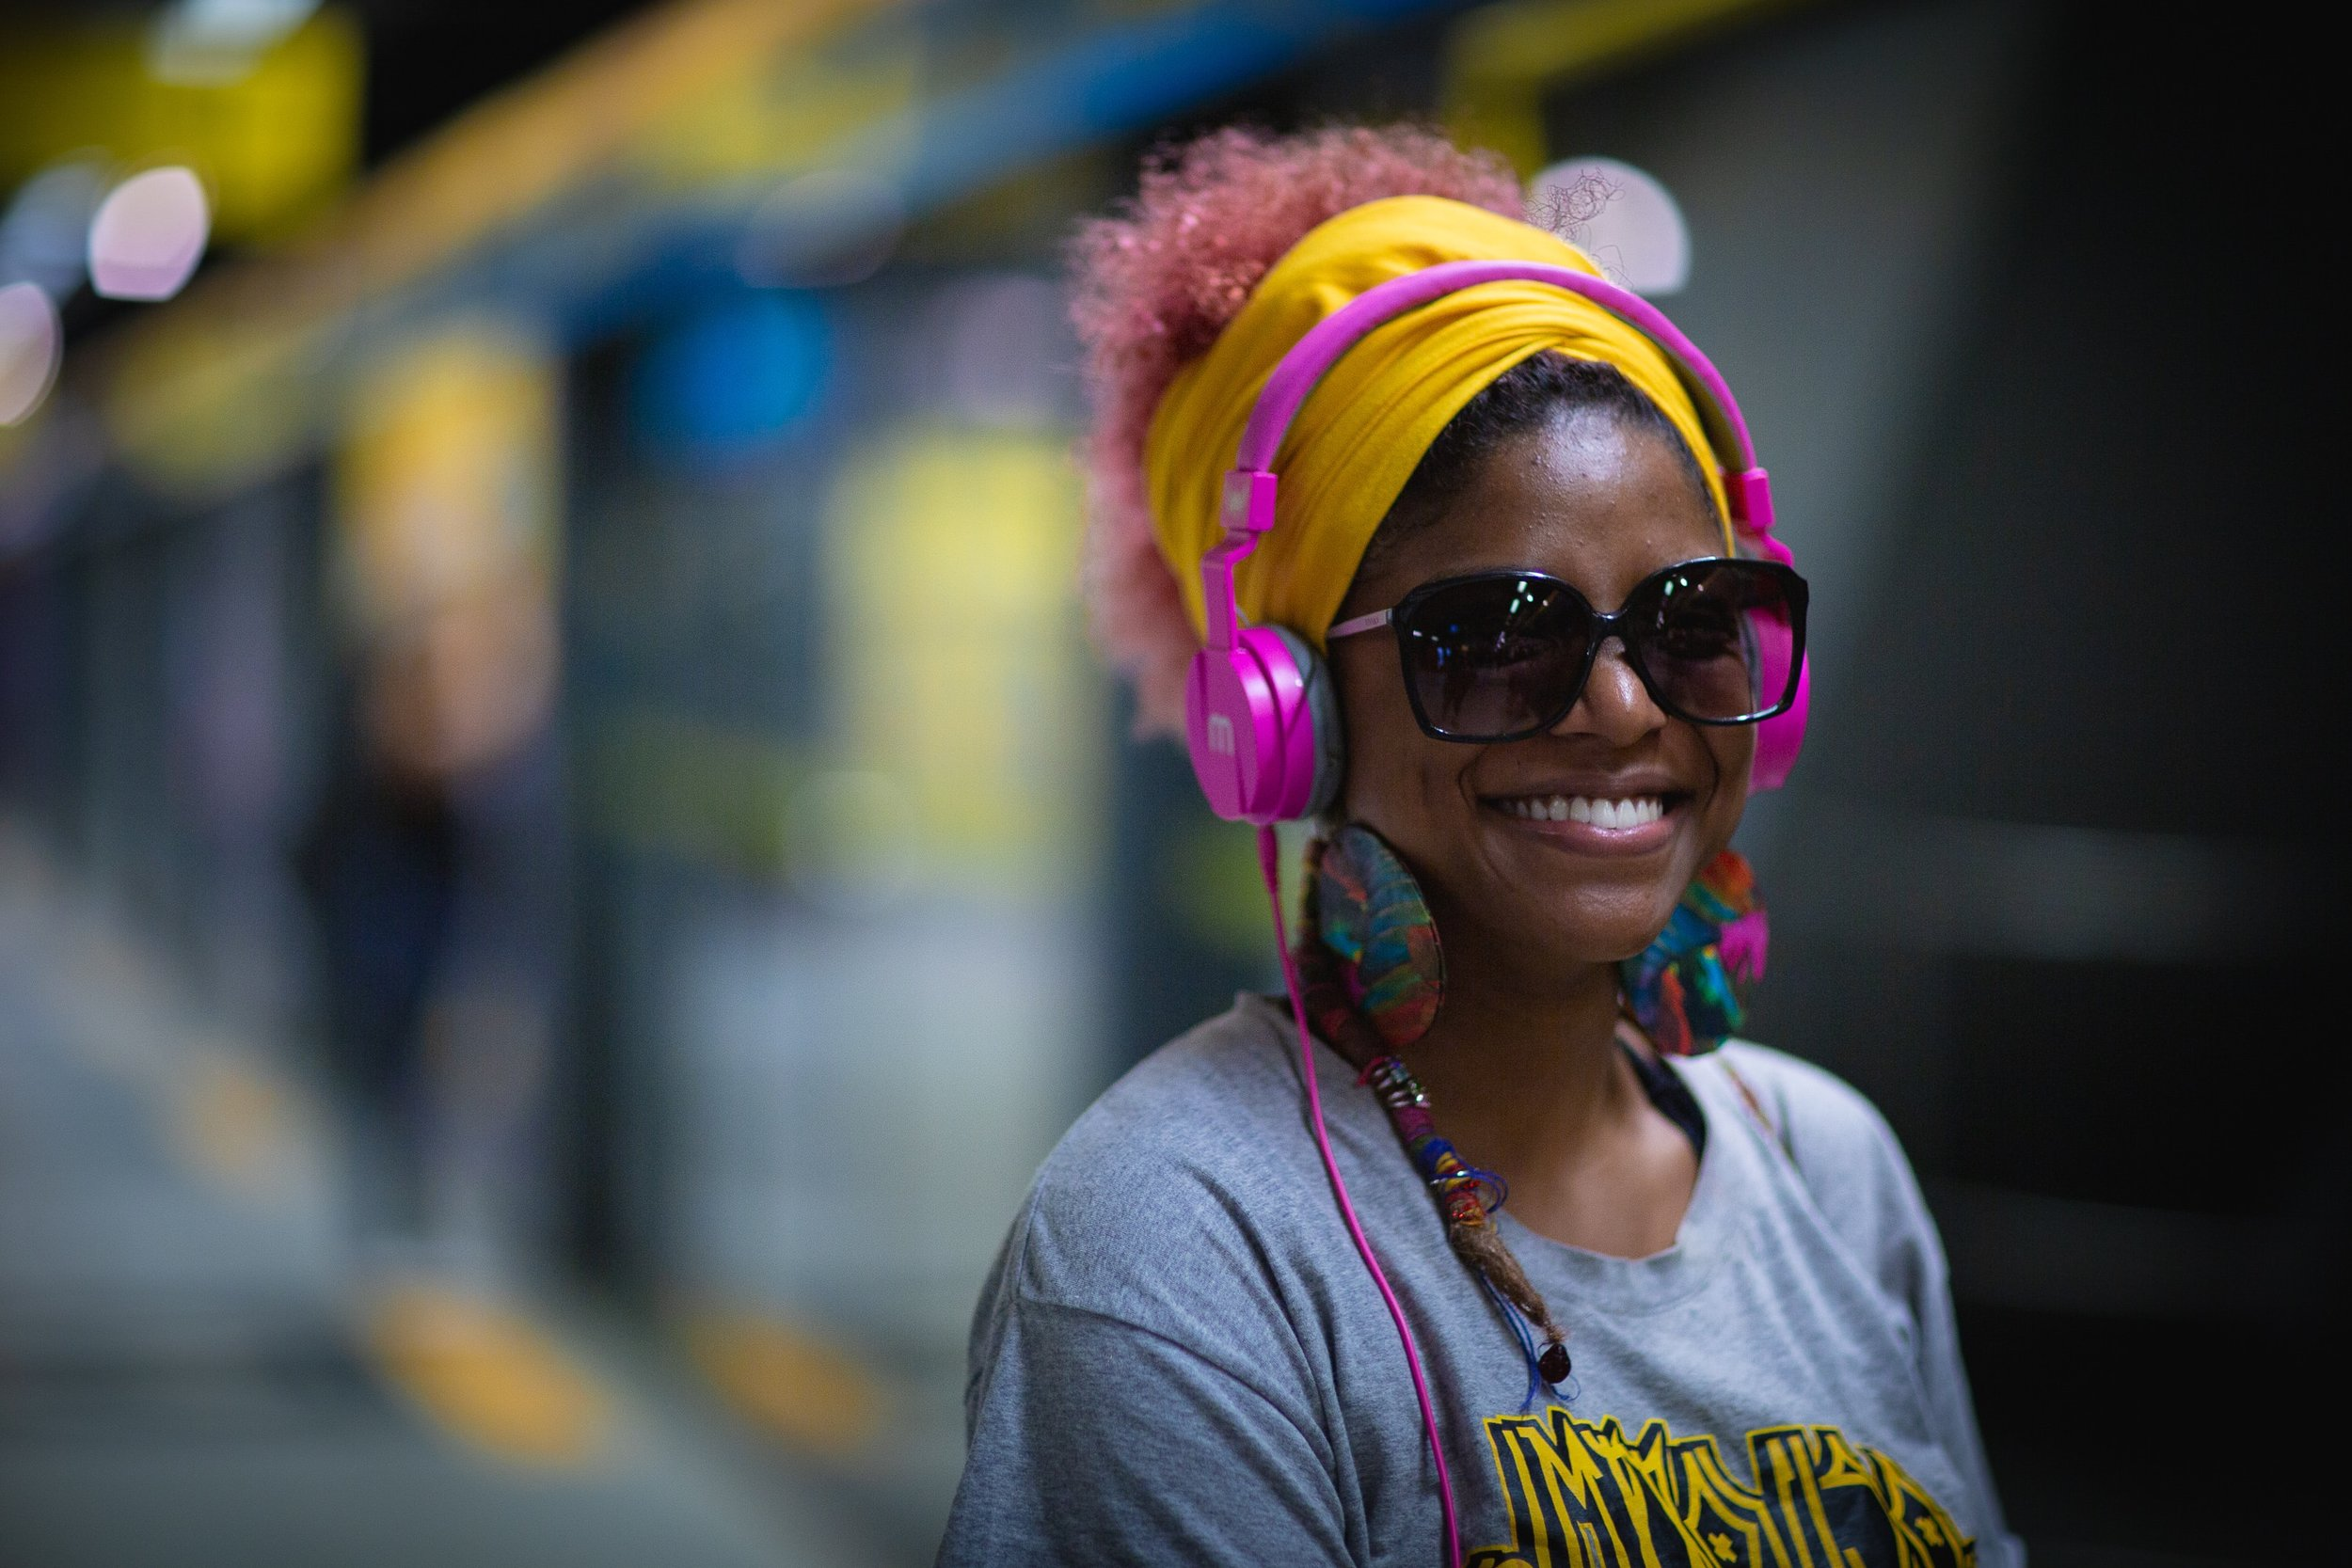 A person wearing headphones and smiling